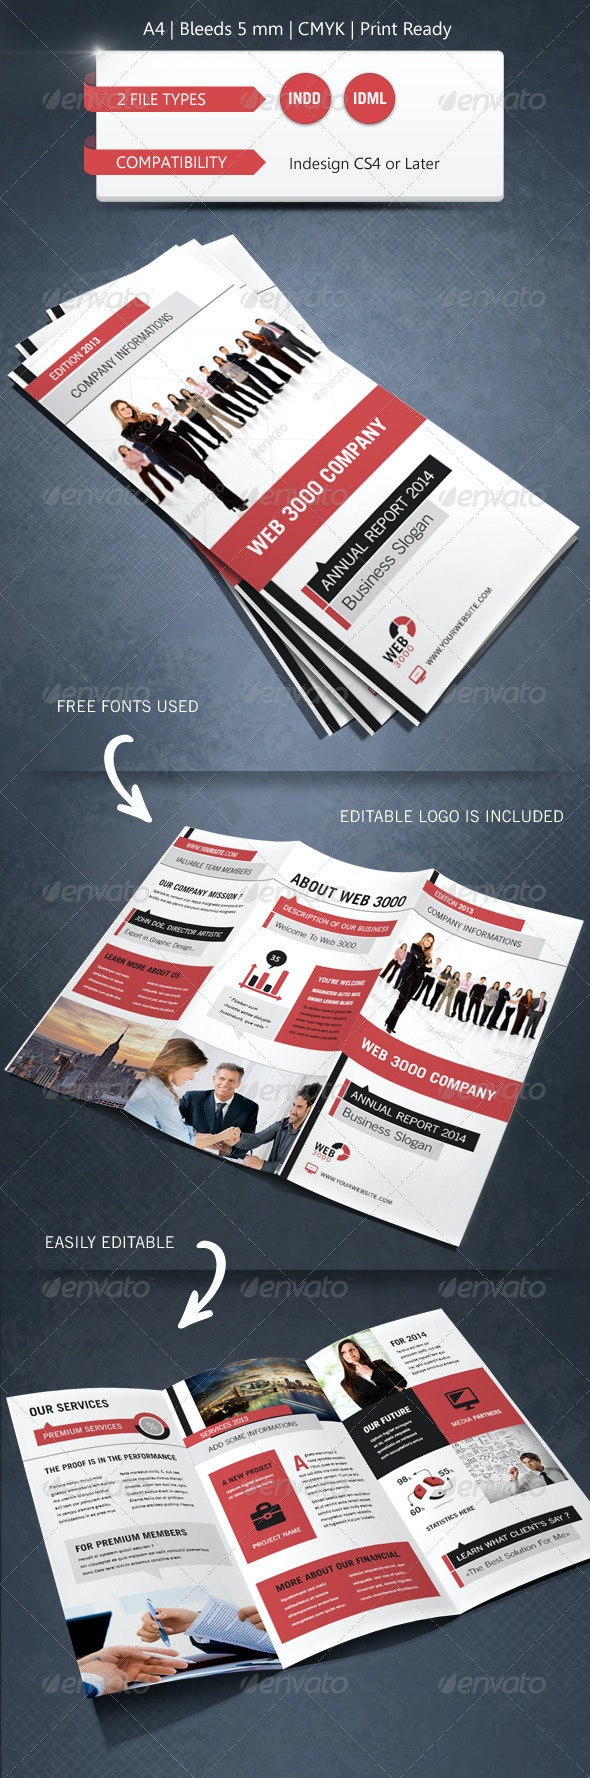 Modern & Corporate Trifold Brochure Template - Corporate Brochures